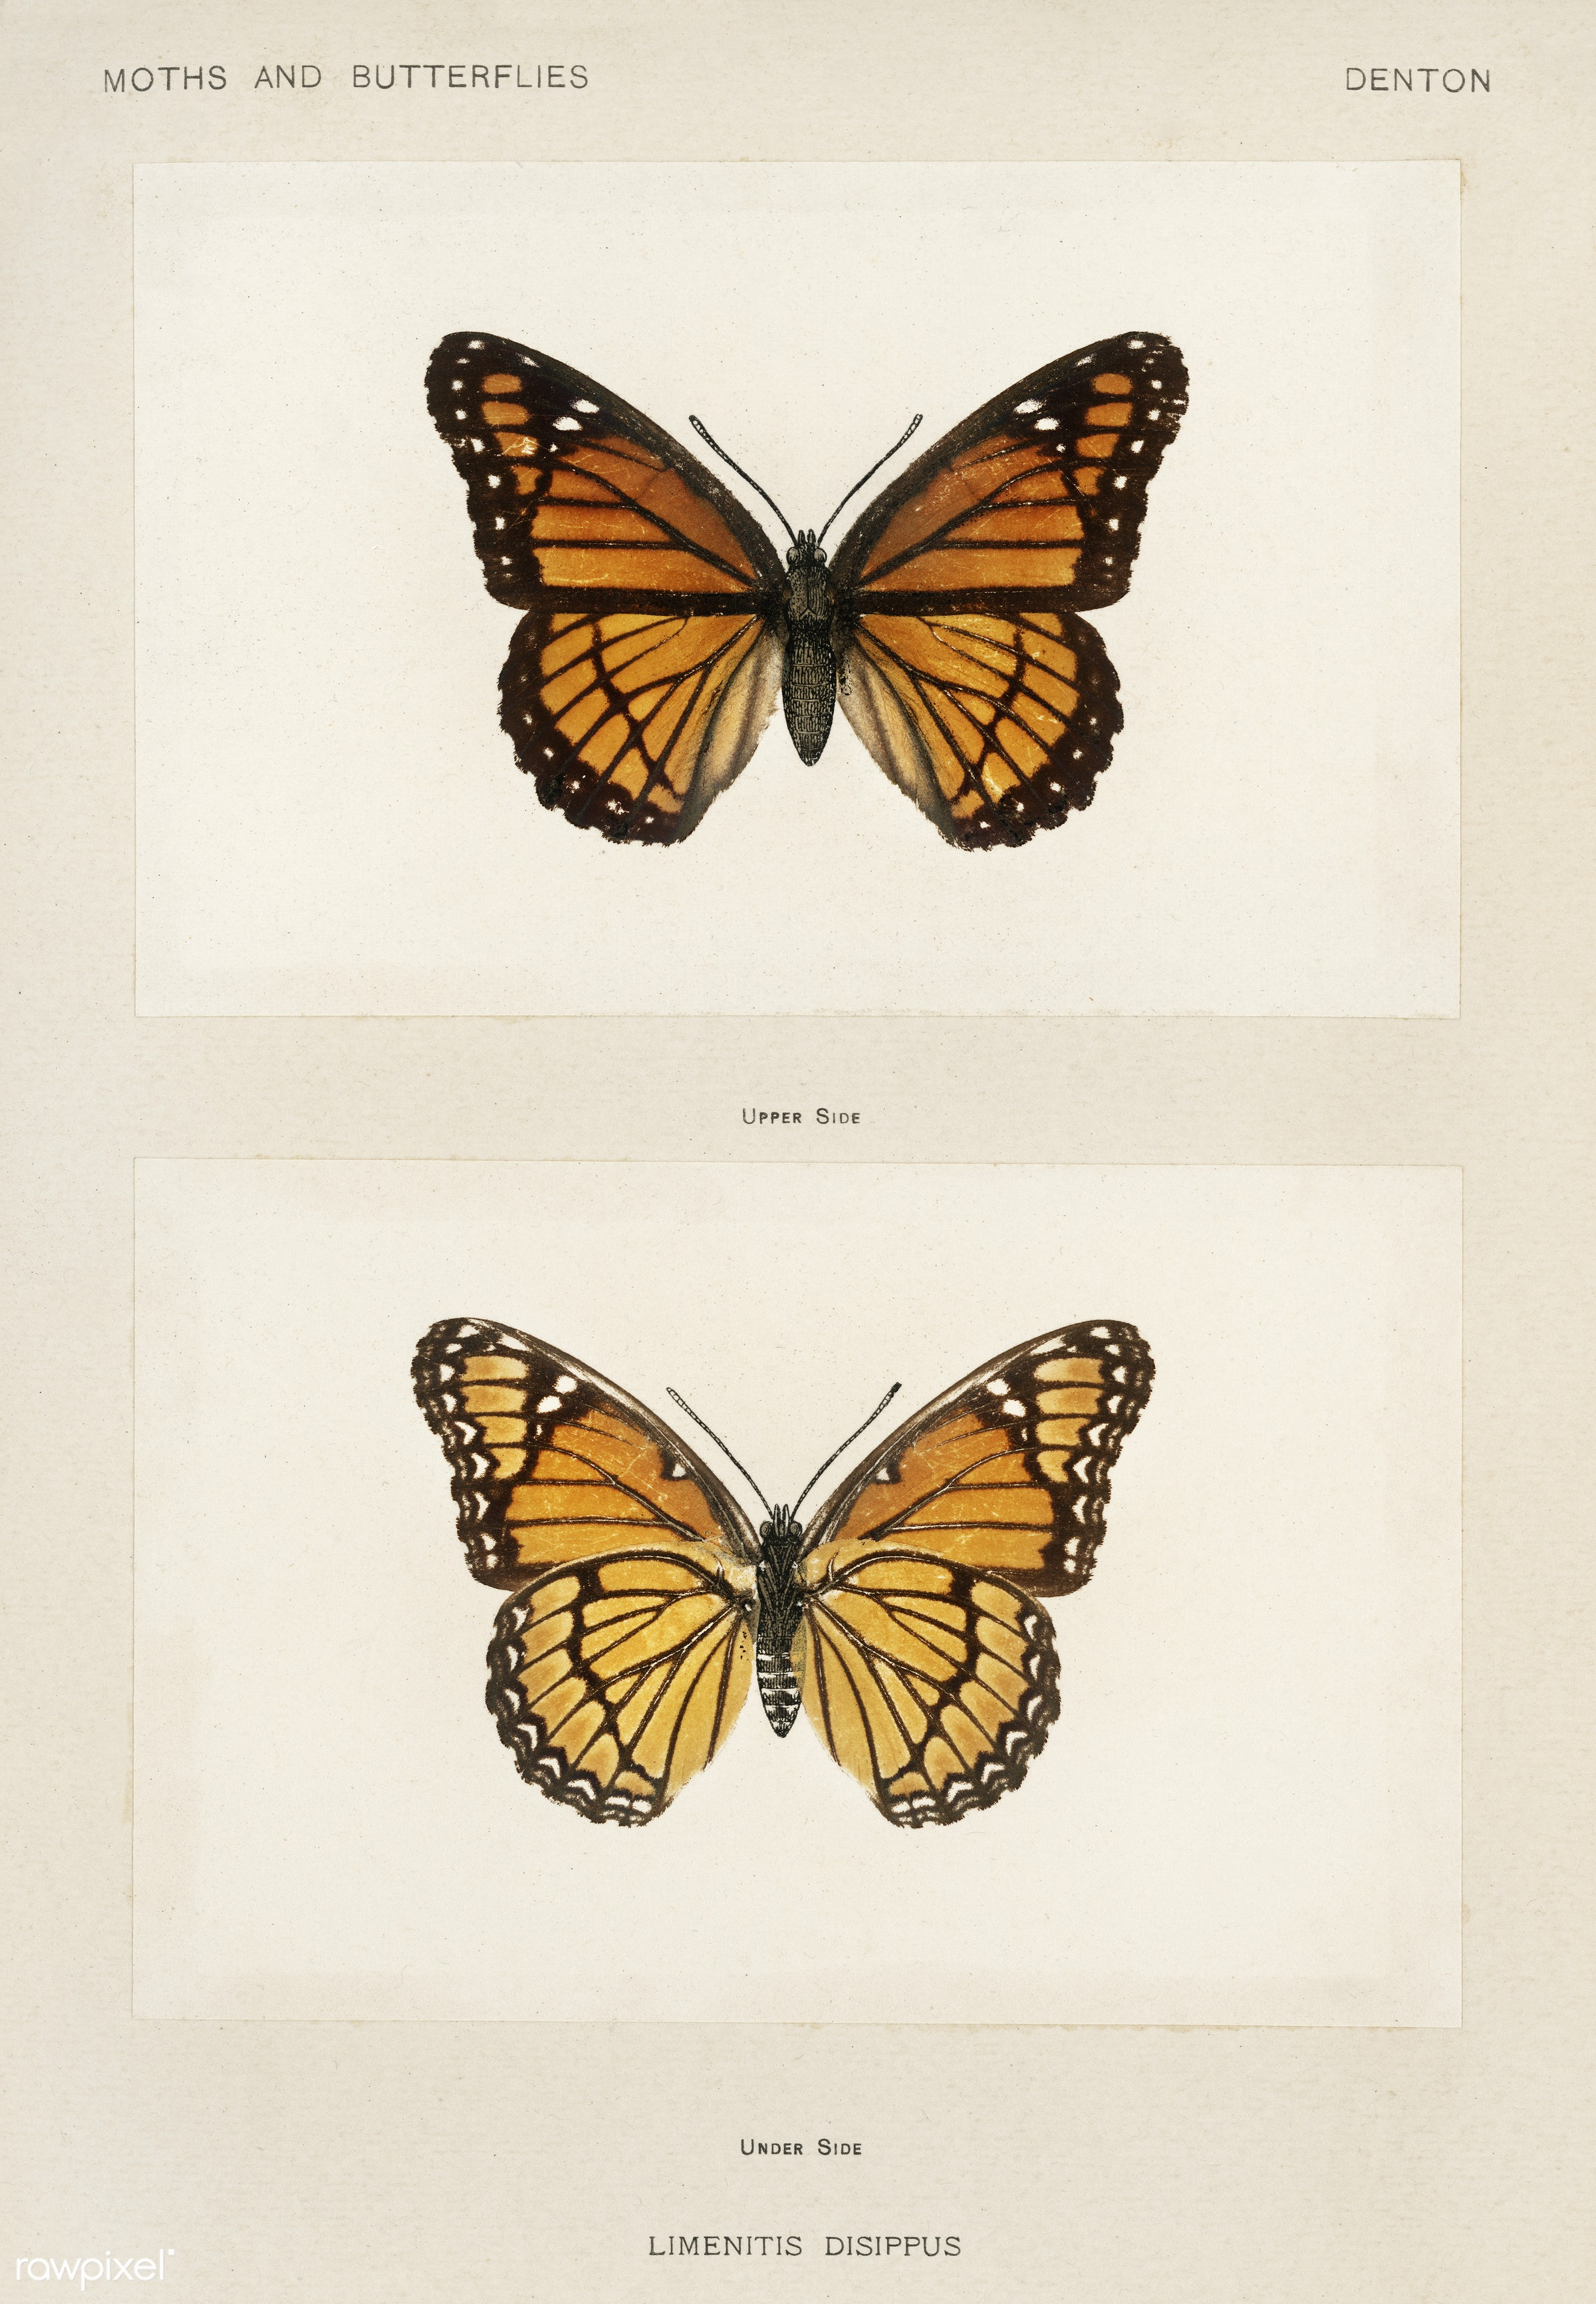 Viceroy (Limenitis Disippus) from Moths and butterflies of the United States (1900) by Sherman F. Denton (1856-1937)....